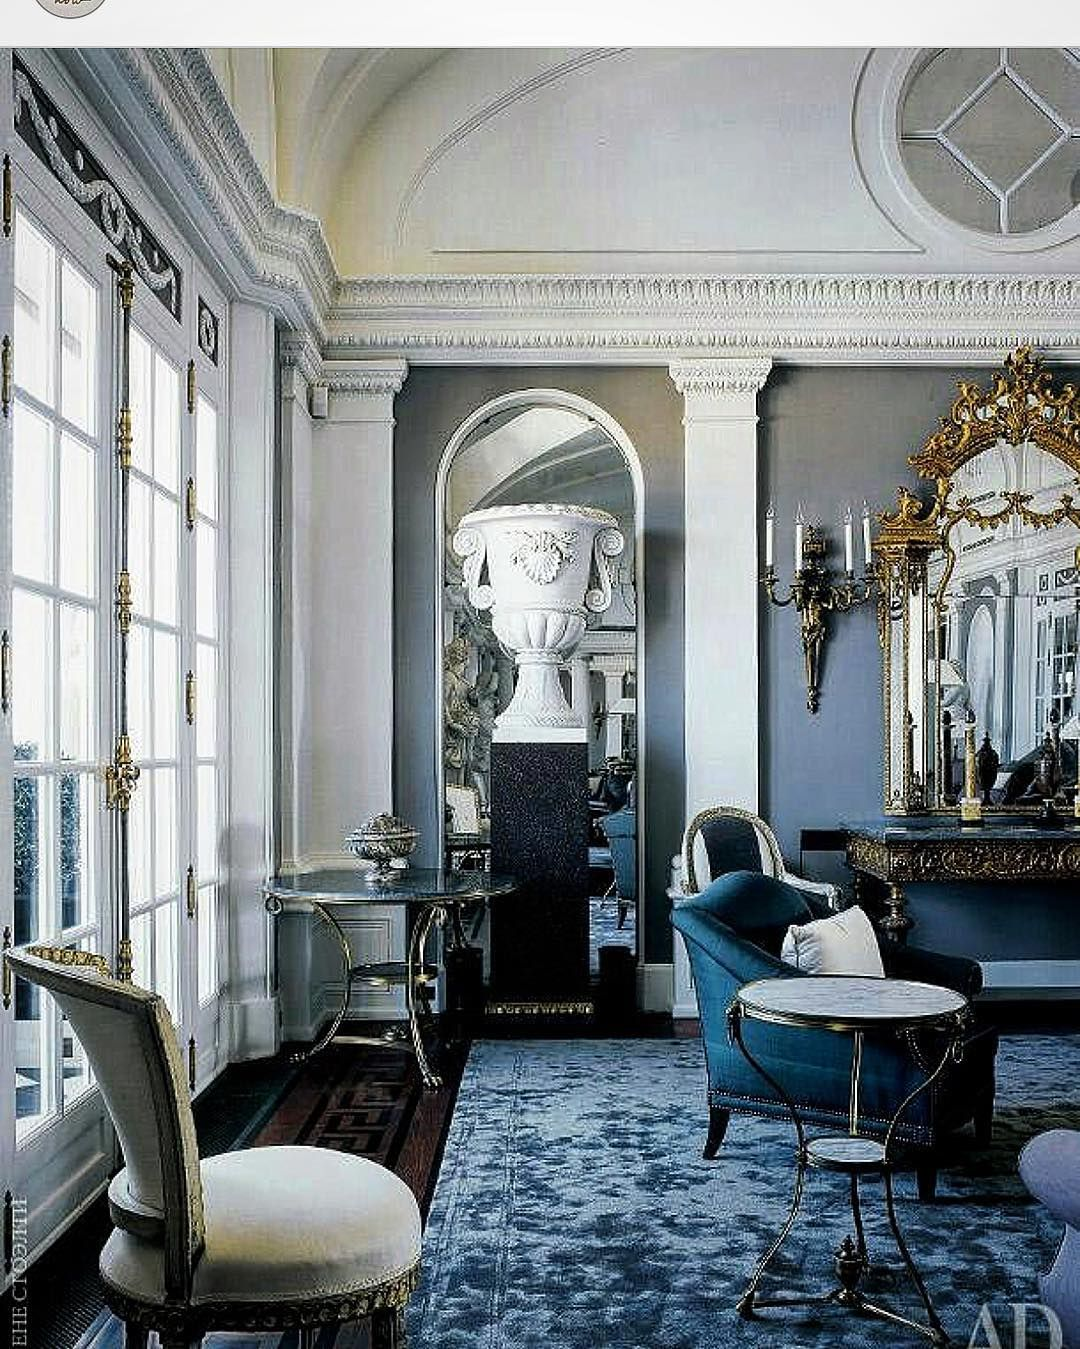 Simply neo classic simply neo classic pinterest for Modern neoclassical interior design